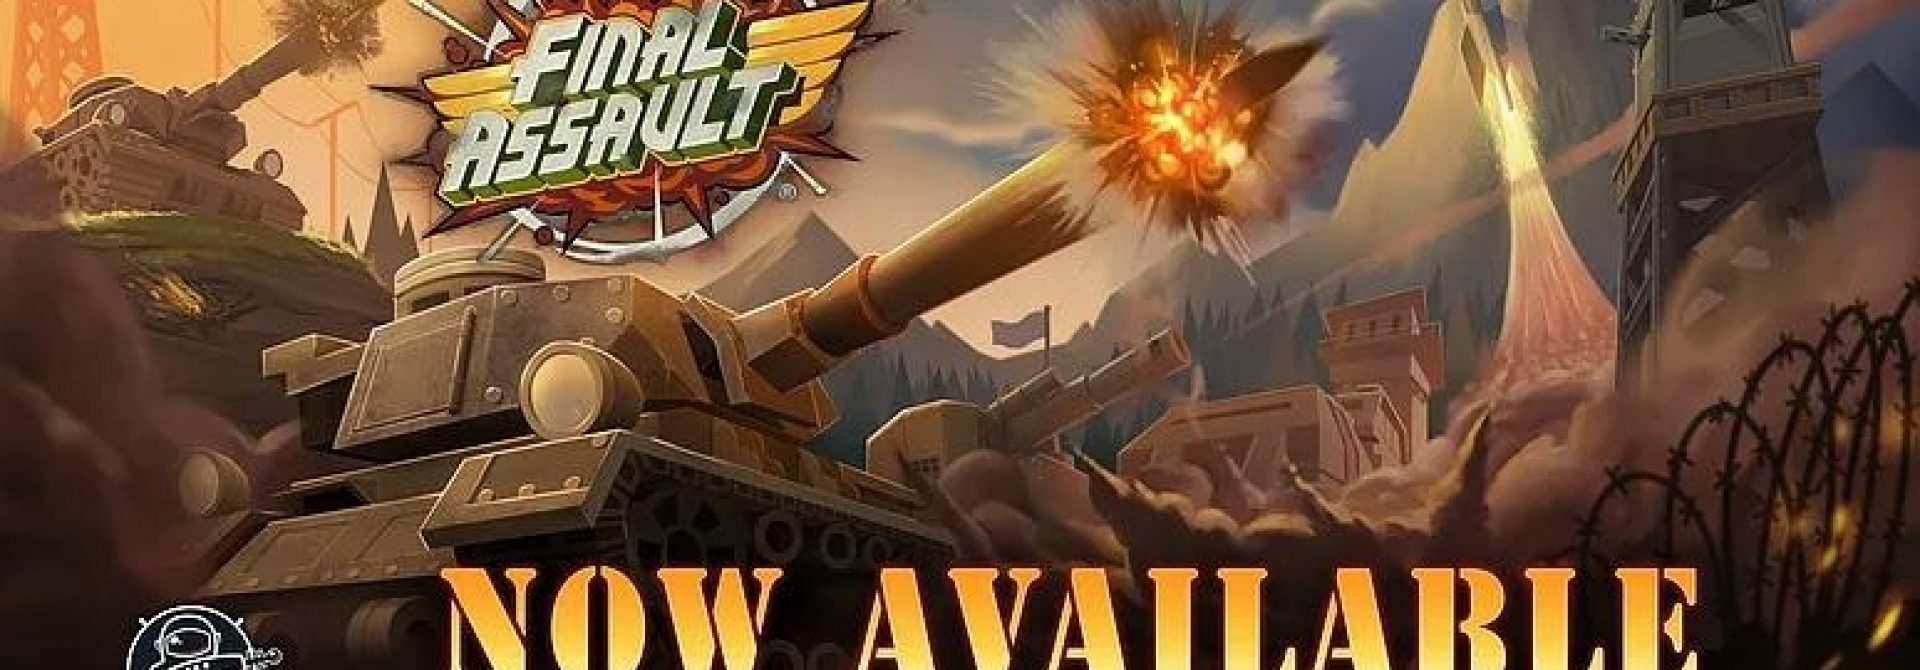 Final Assault Coming To Playstation VR